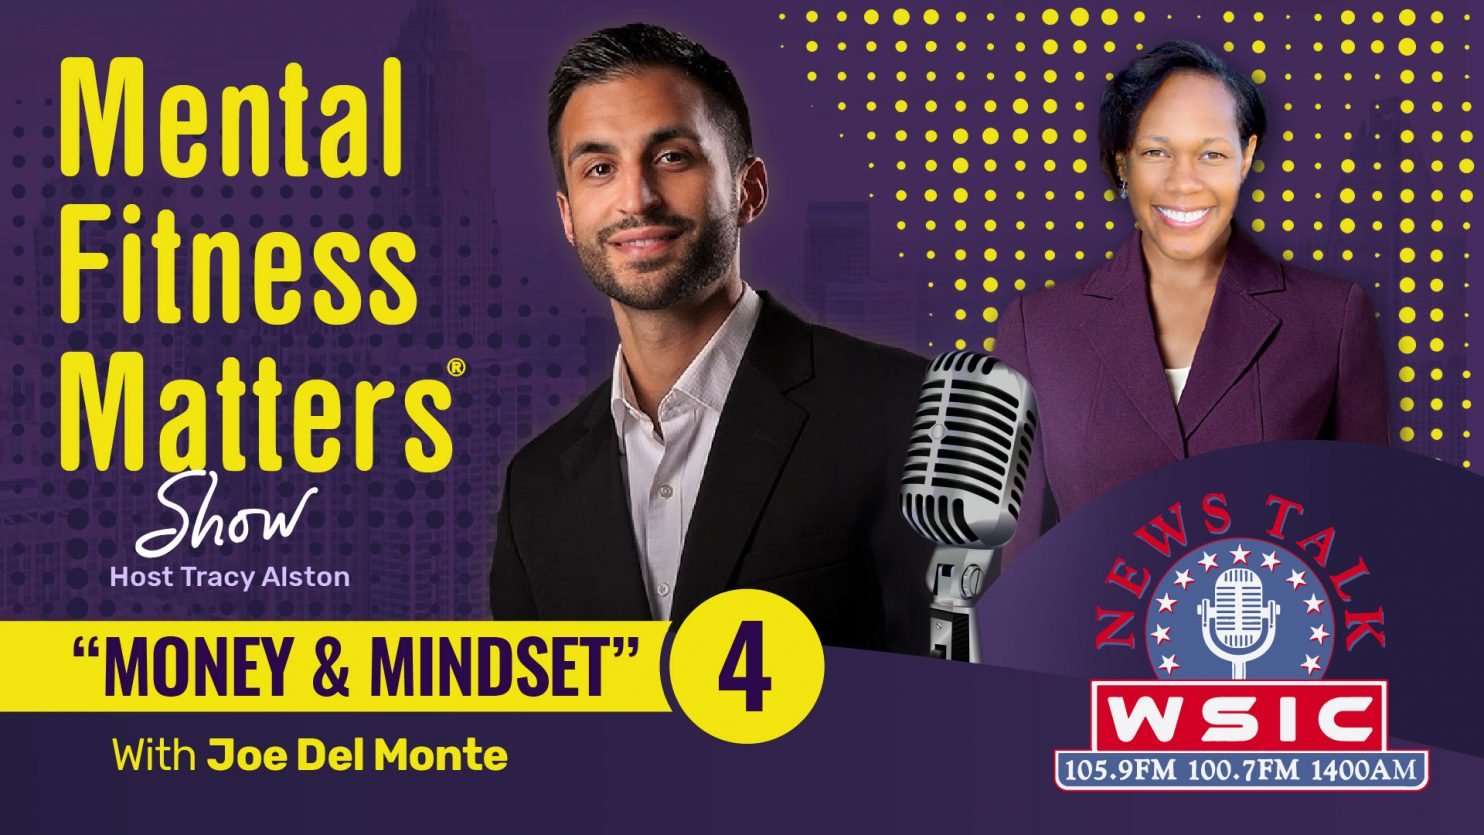 Joe del Monte, Money and Mindset